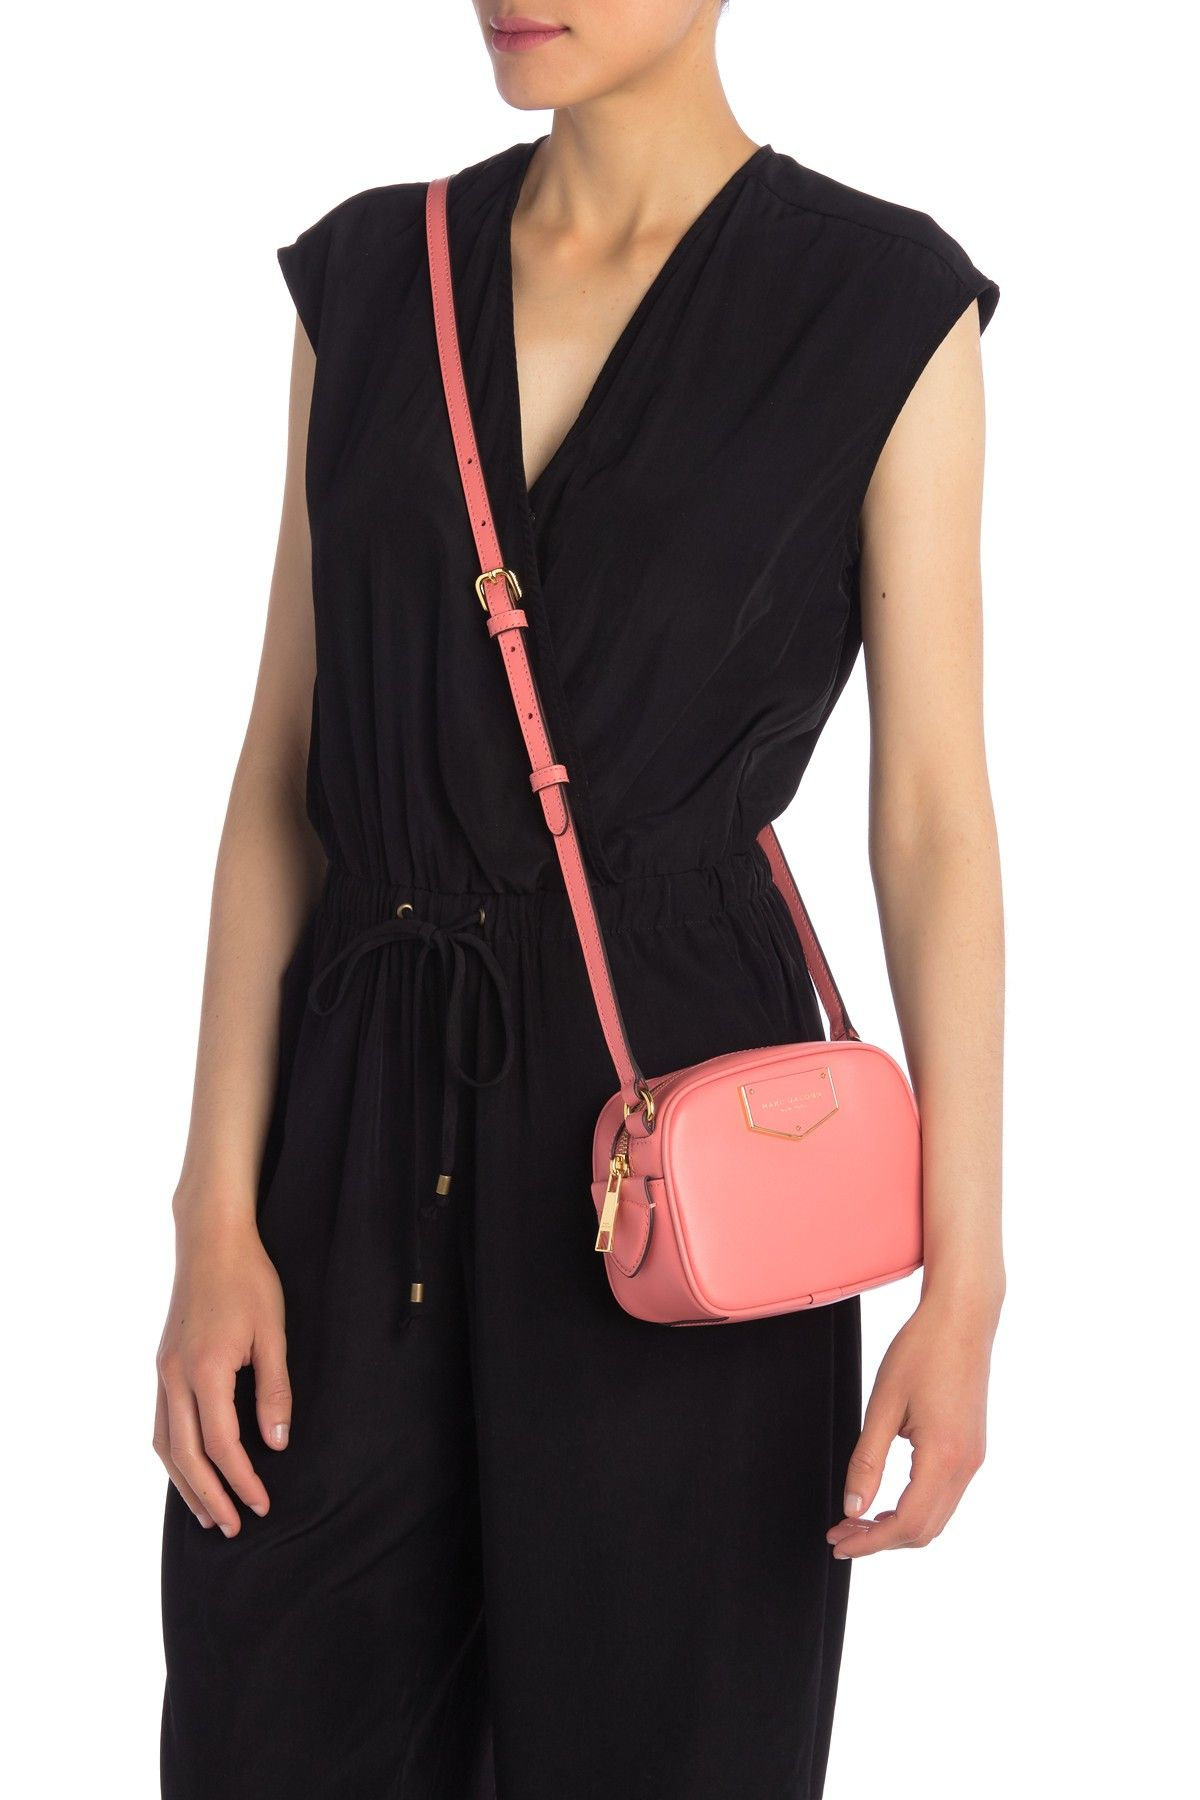 marc jacobs voyager square crossbody